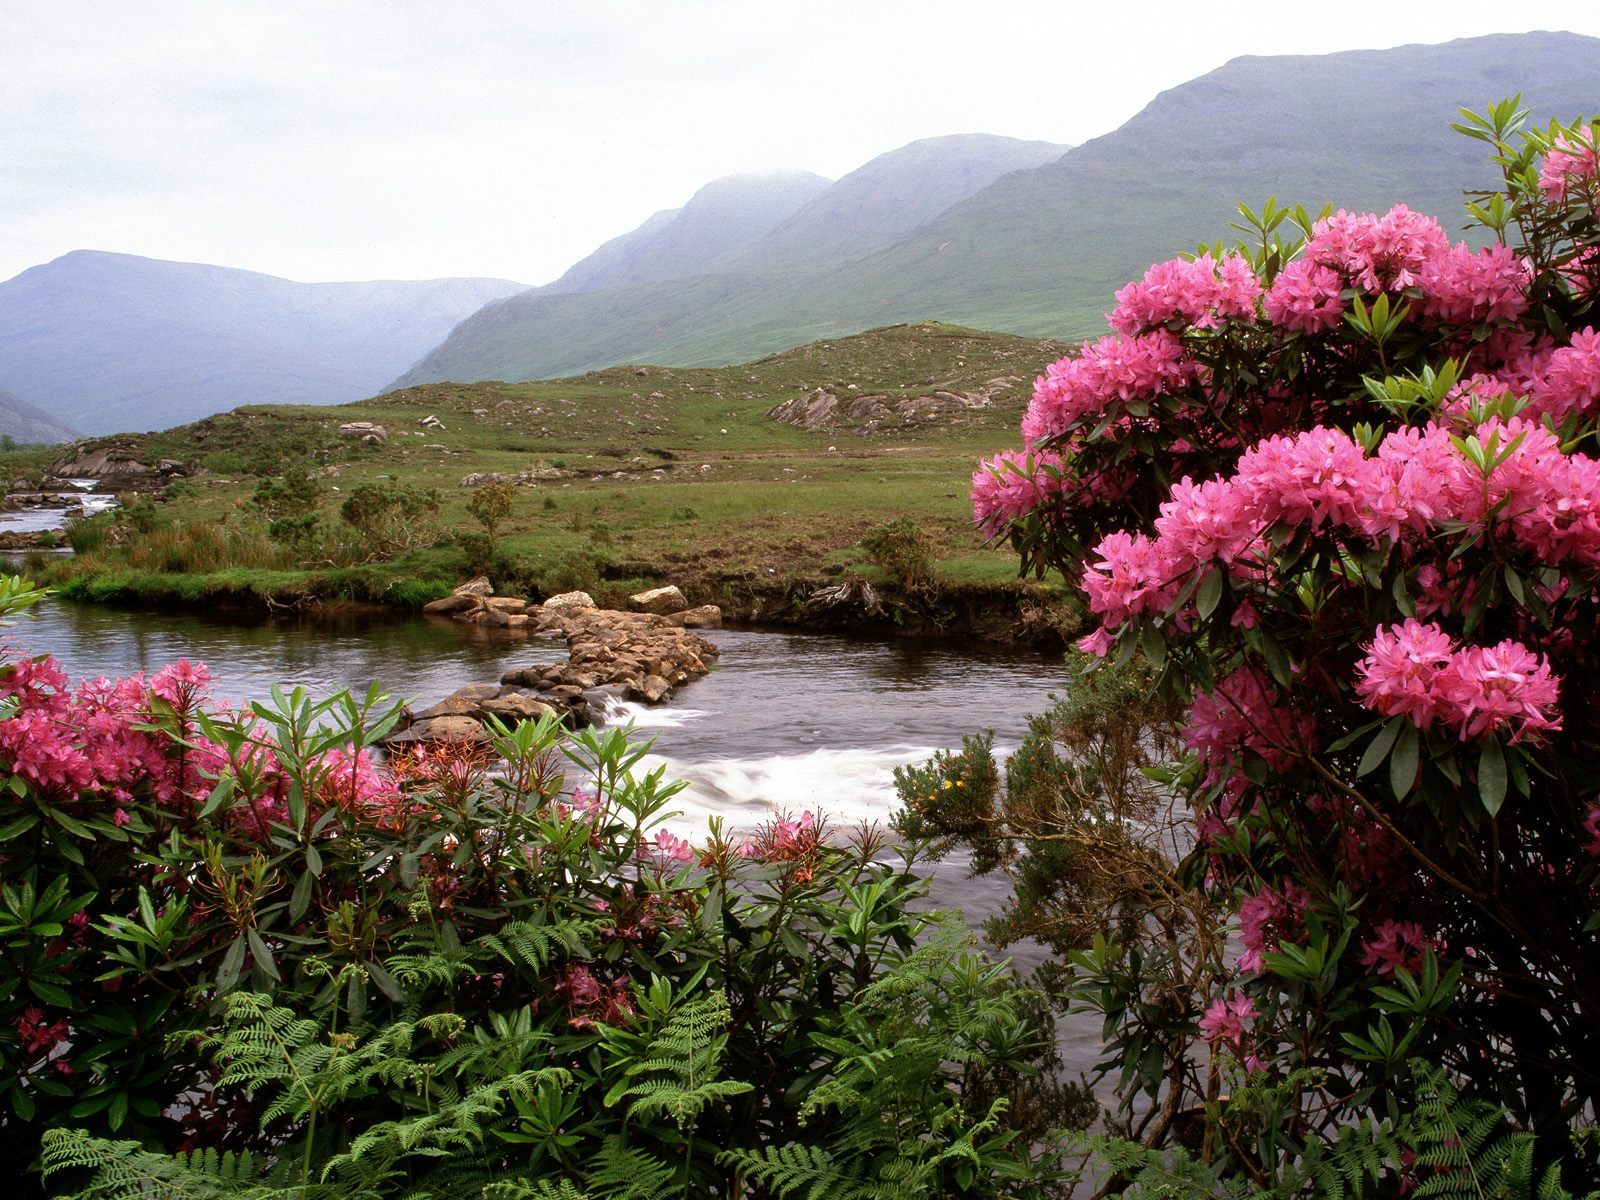 Rhododendrons Bloom Along the River Bundorragha Ireland